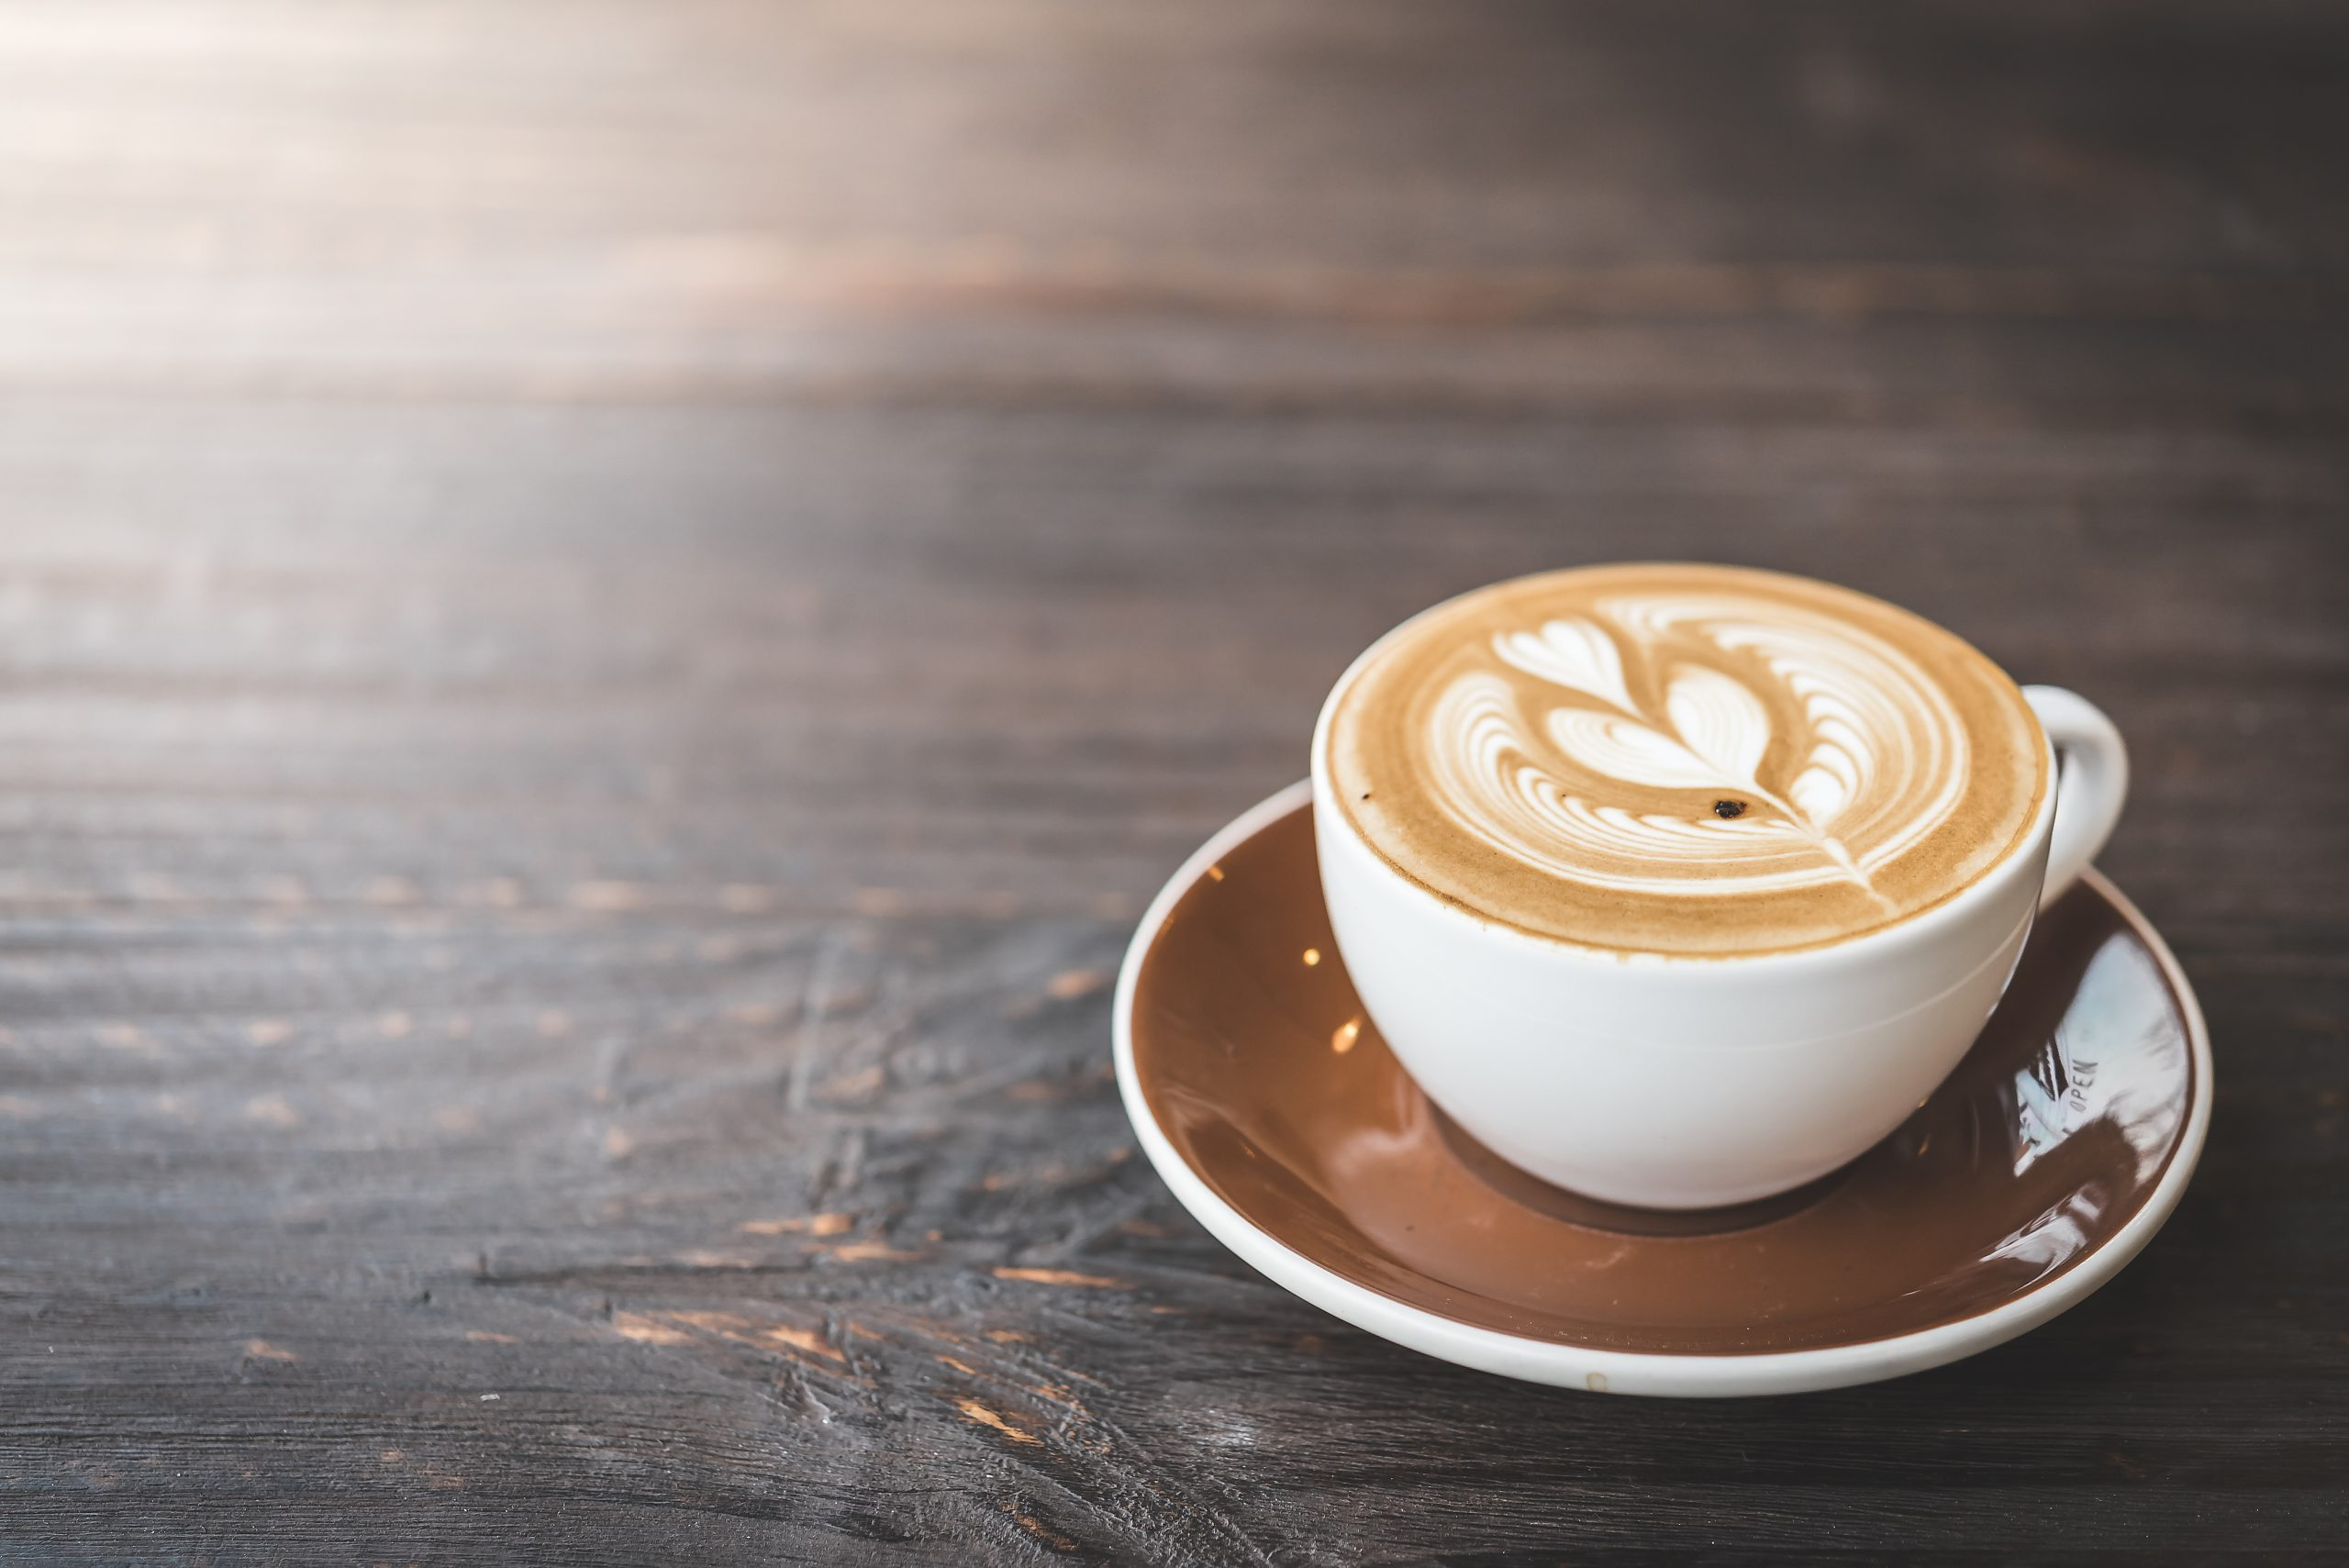 Picture showing cup of coffee